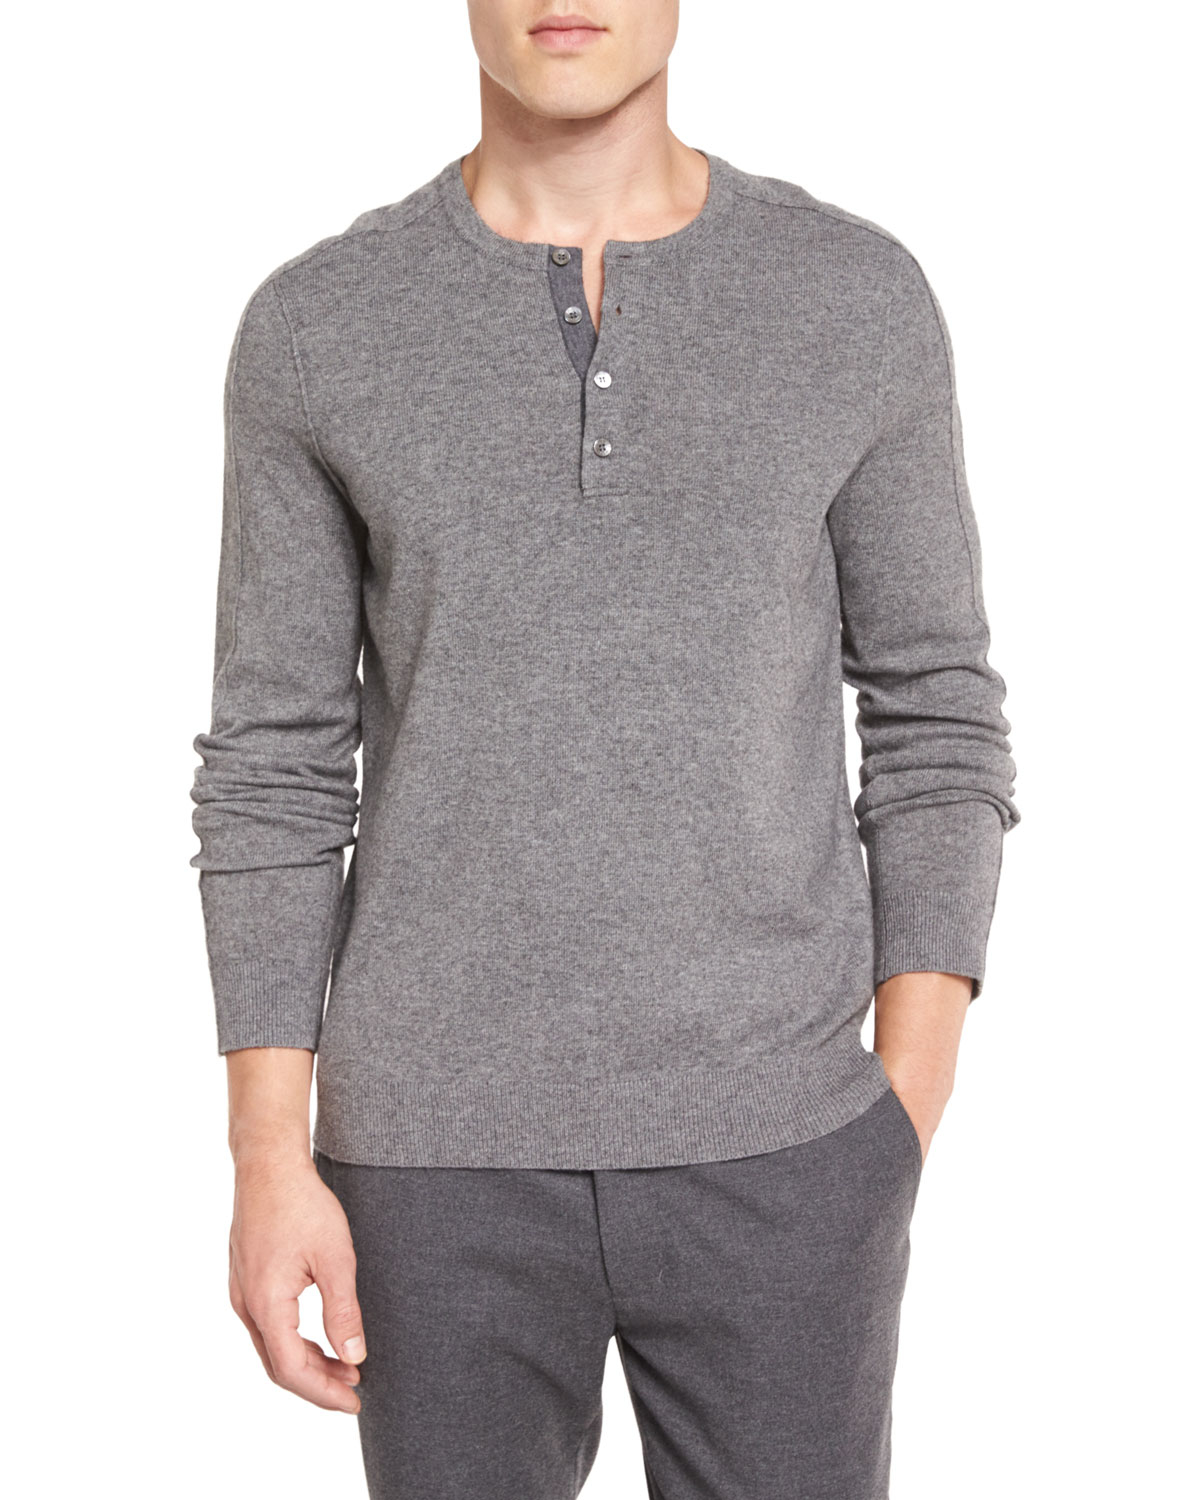 Warm wool sweater like those worn by the British Commandos in World War II. Excellent resiliency and shape retention. Four-button neck style and turn-back cuffs.